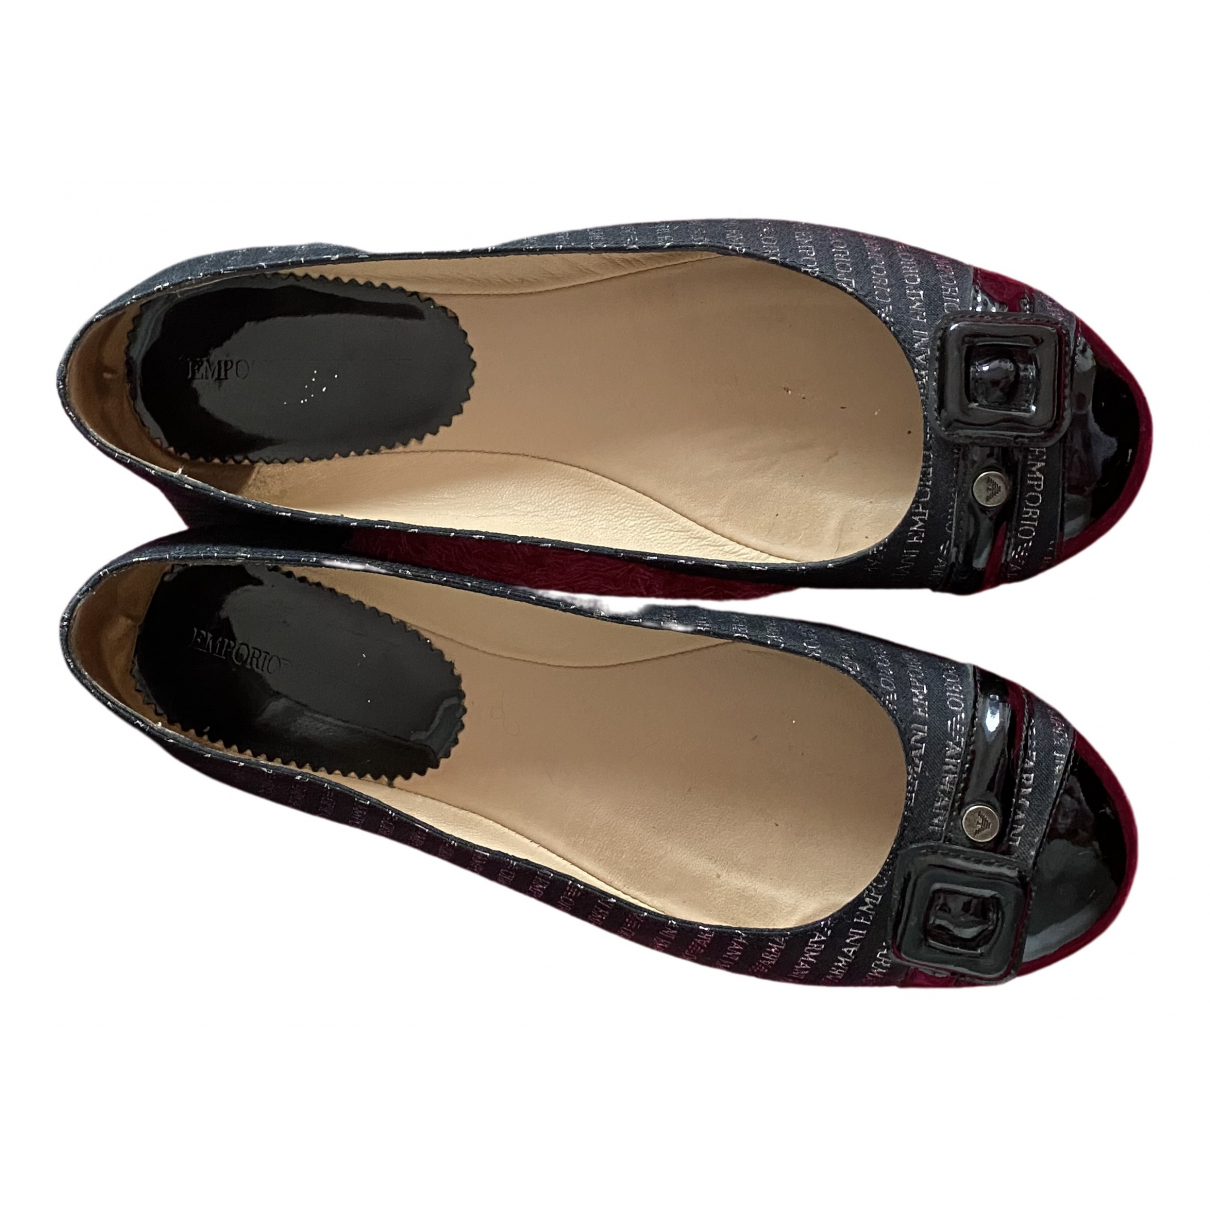 Emporio Armani N Black Patent leather Ballet flats for Women 38 EU